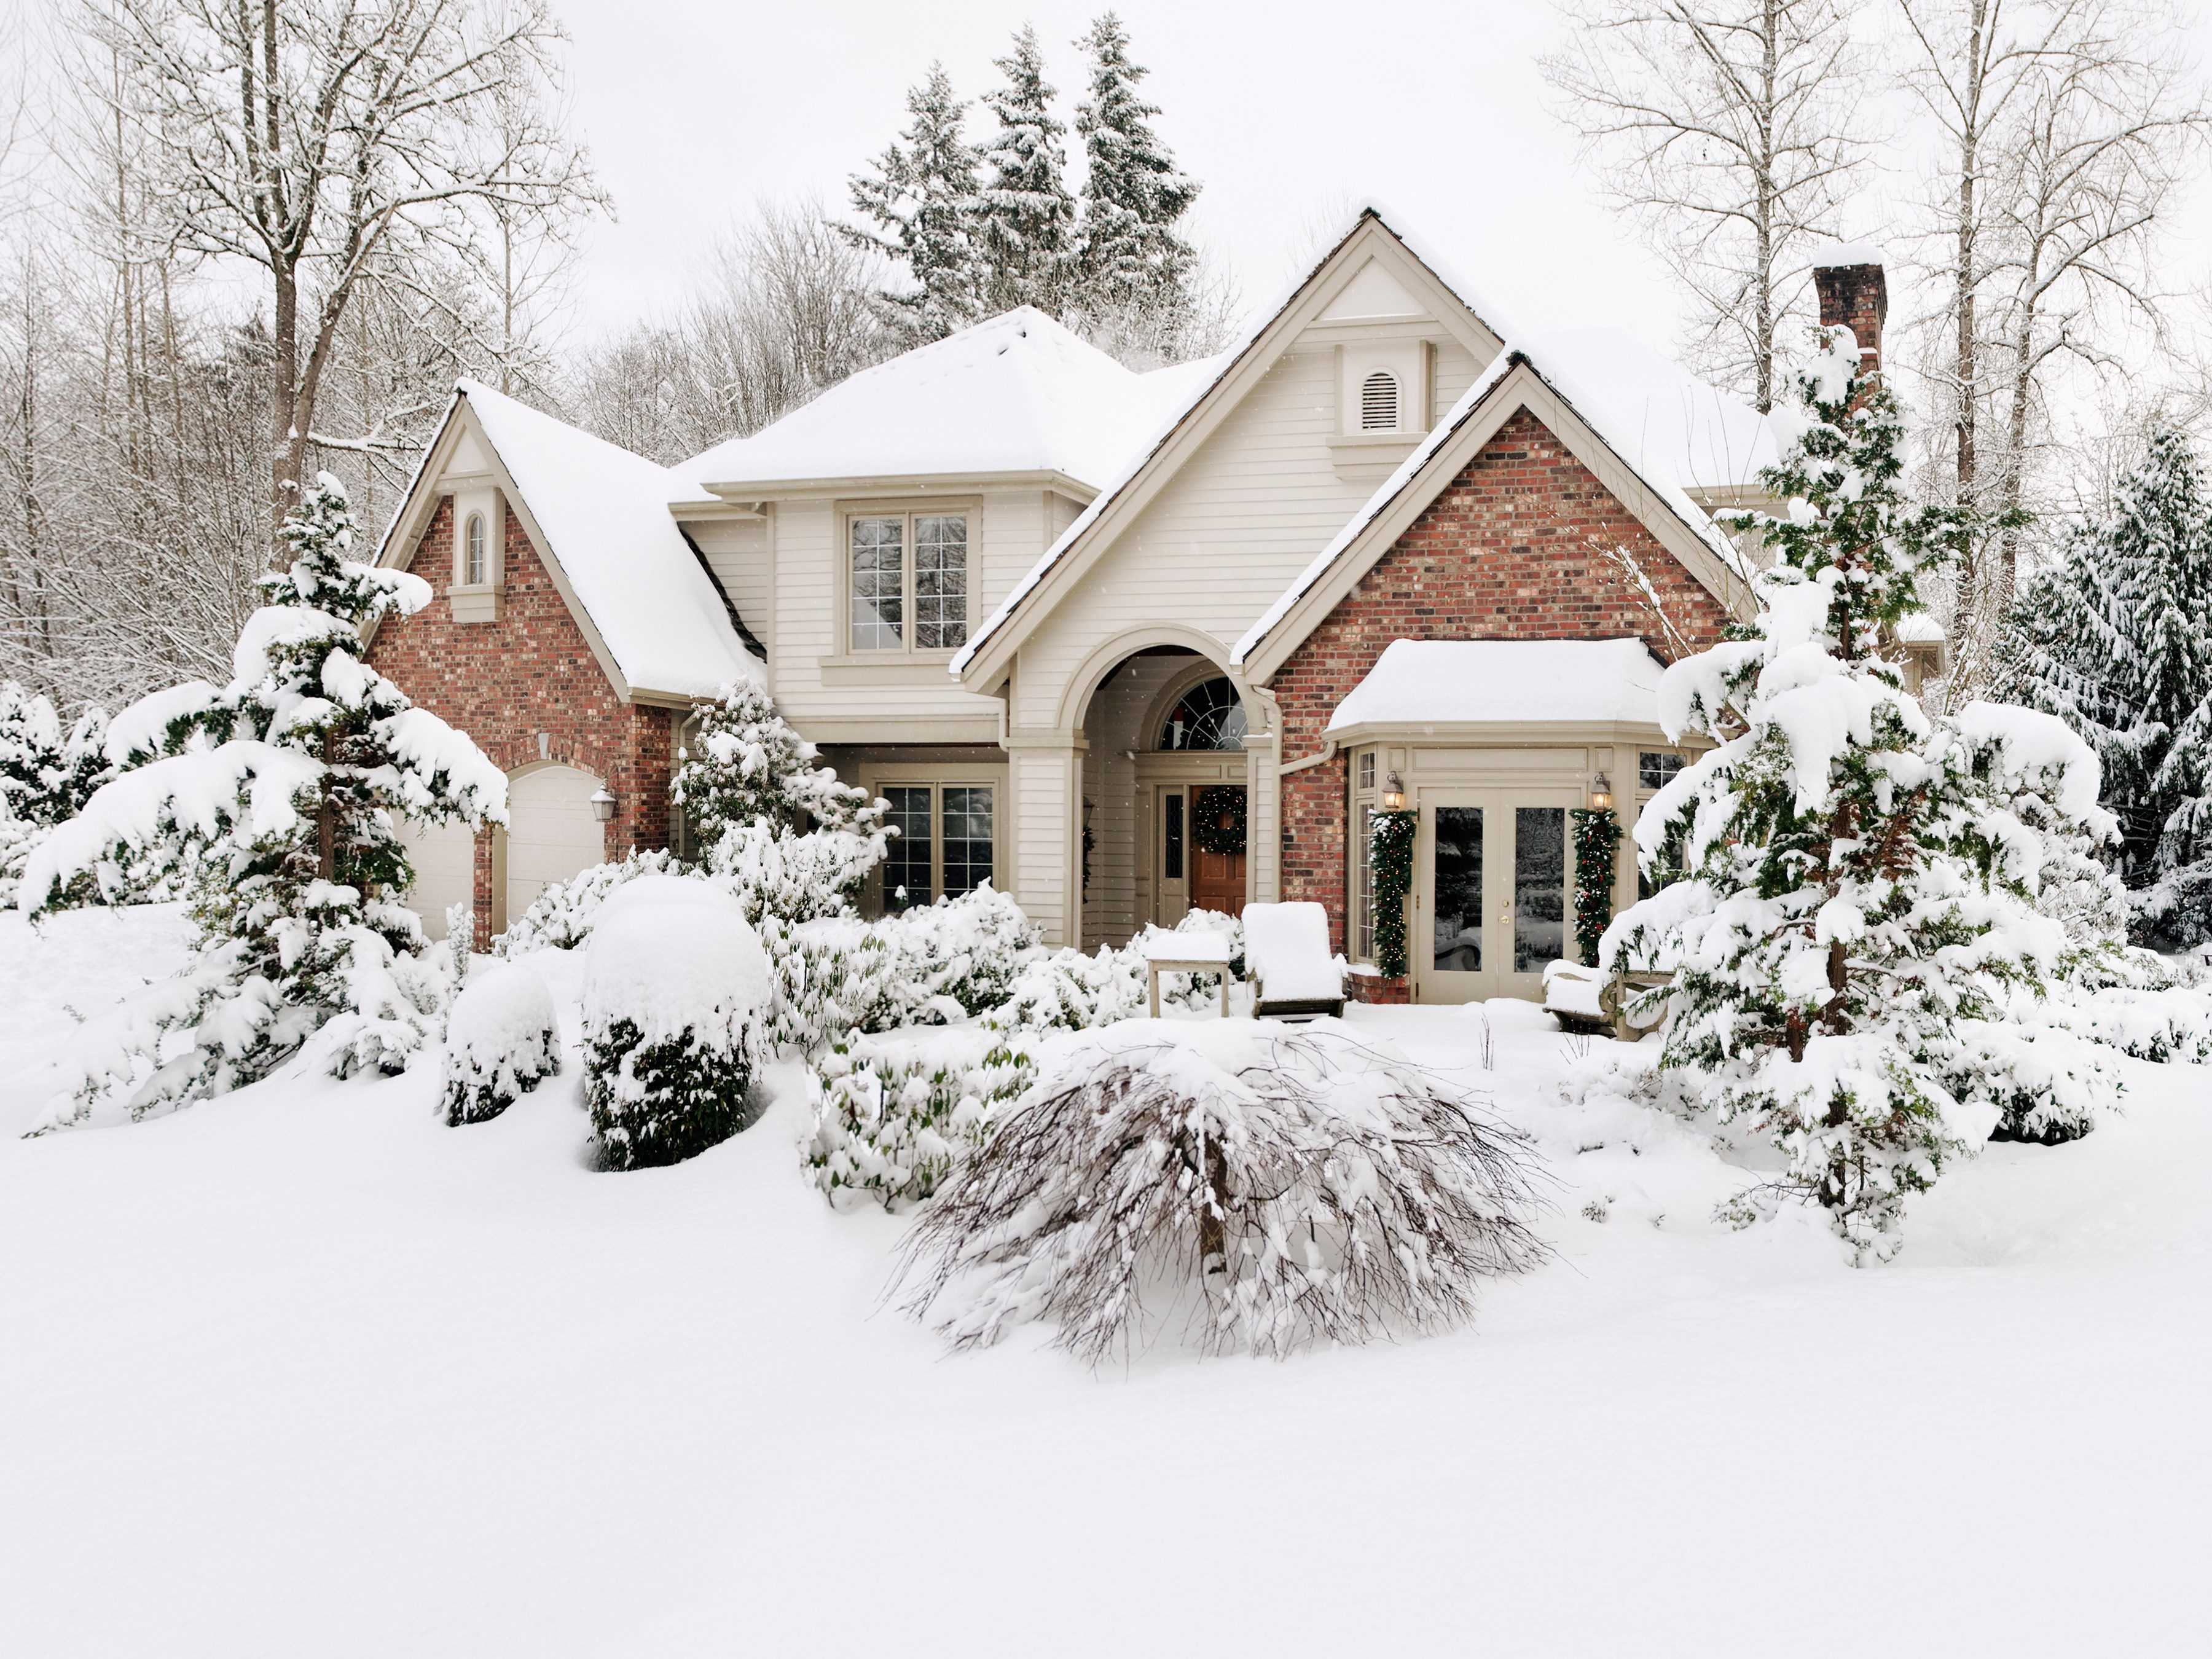 1. Shovel snow away from your home's foundation.